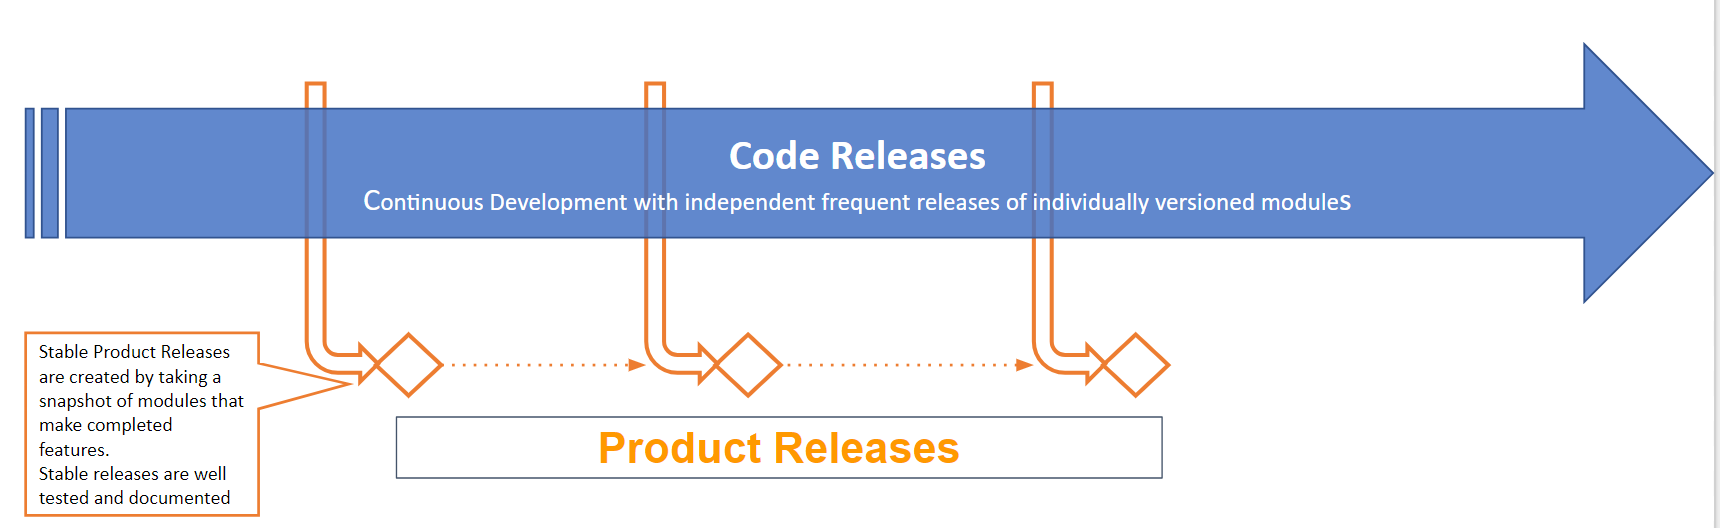 Product releases flow